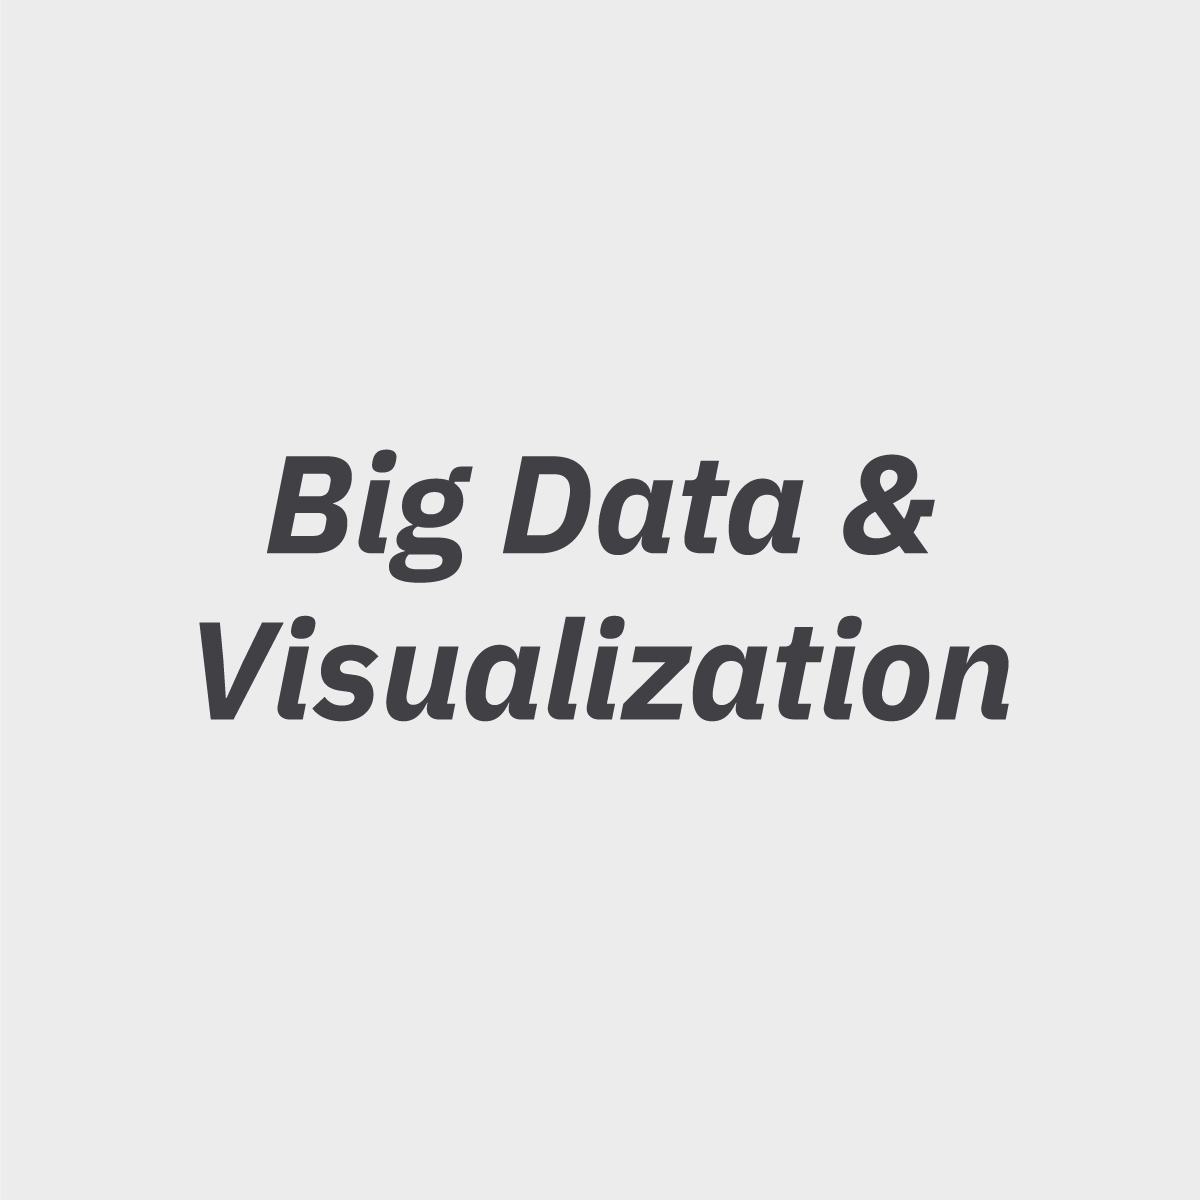 Get Dudley, Orlando, FL & New York, NY, Portfolio, Helene Dudley, Big Data and Visualization